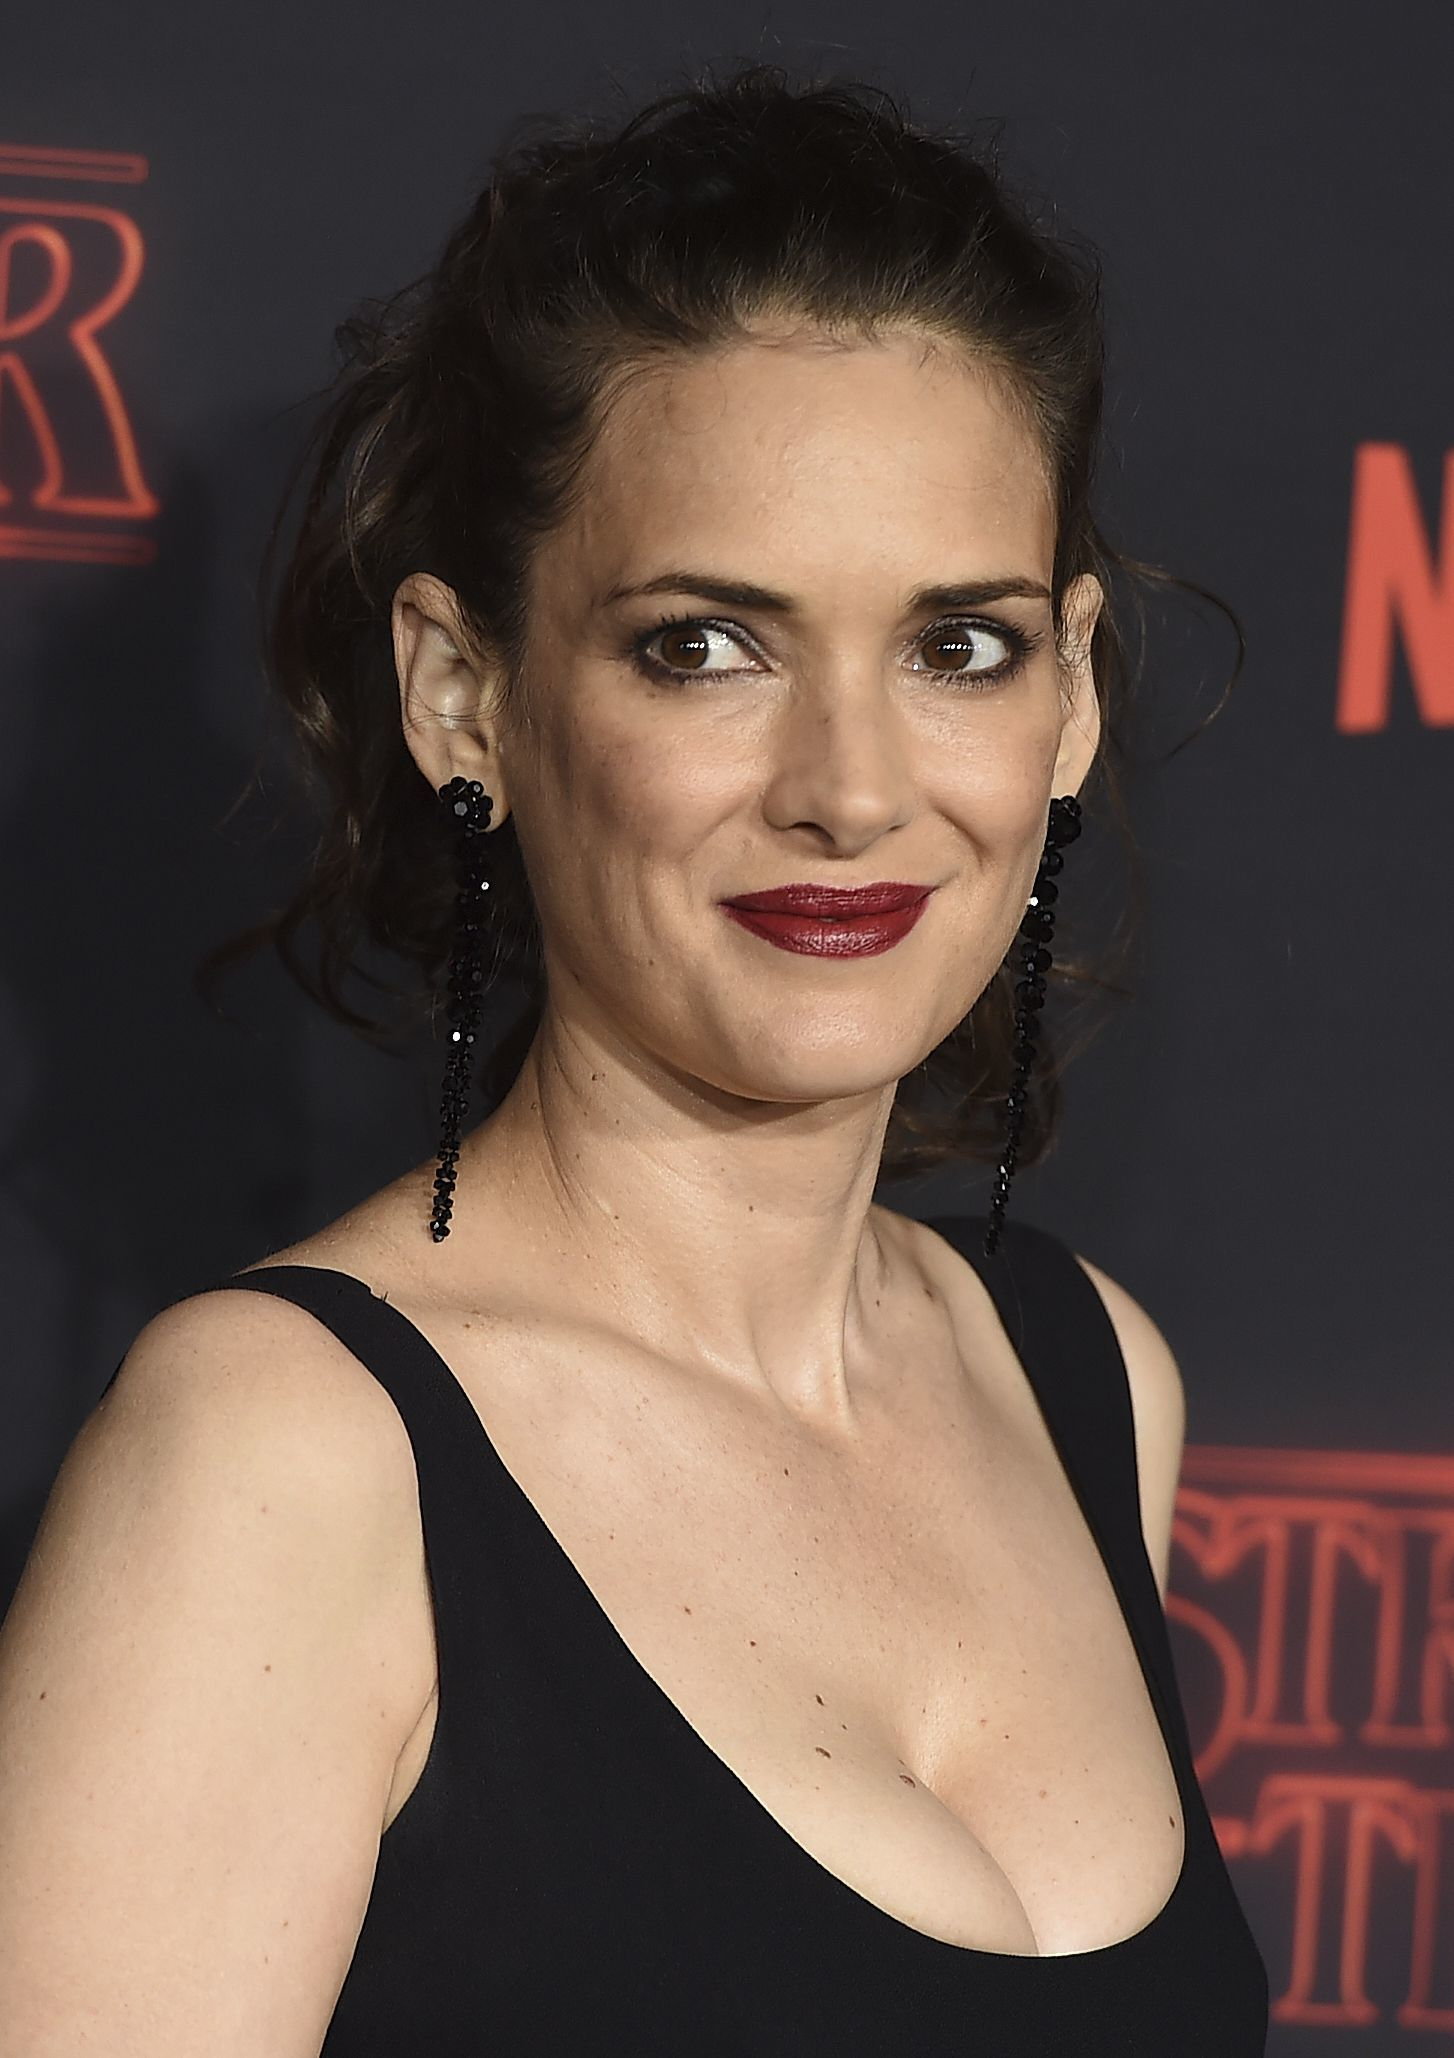 """Winona Ryder arrives at the premiere of """"Stranger Things"""" Season two at the Regency Bruin Theater in Los Angeles on Oct. 26, 2017."""